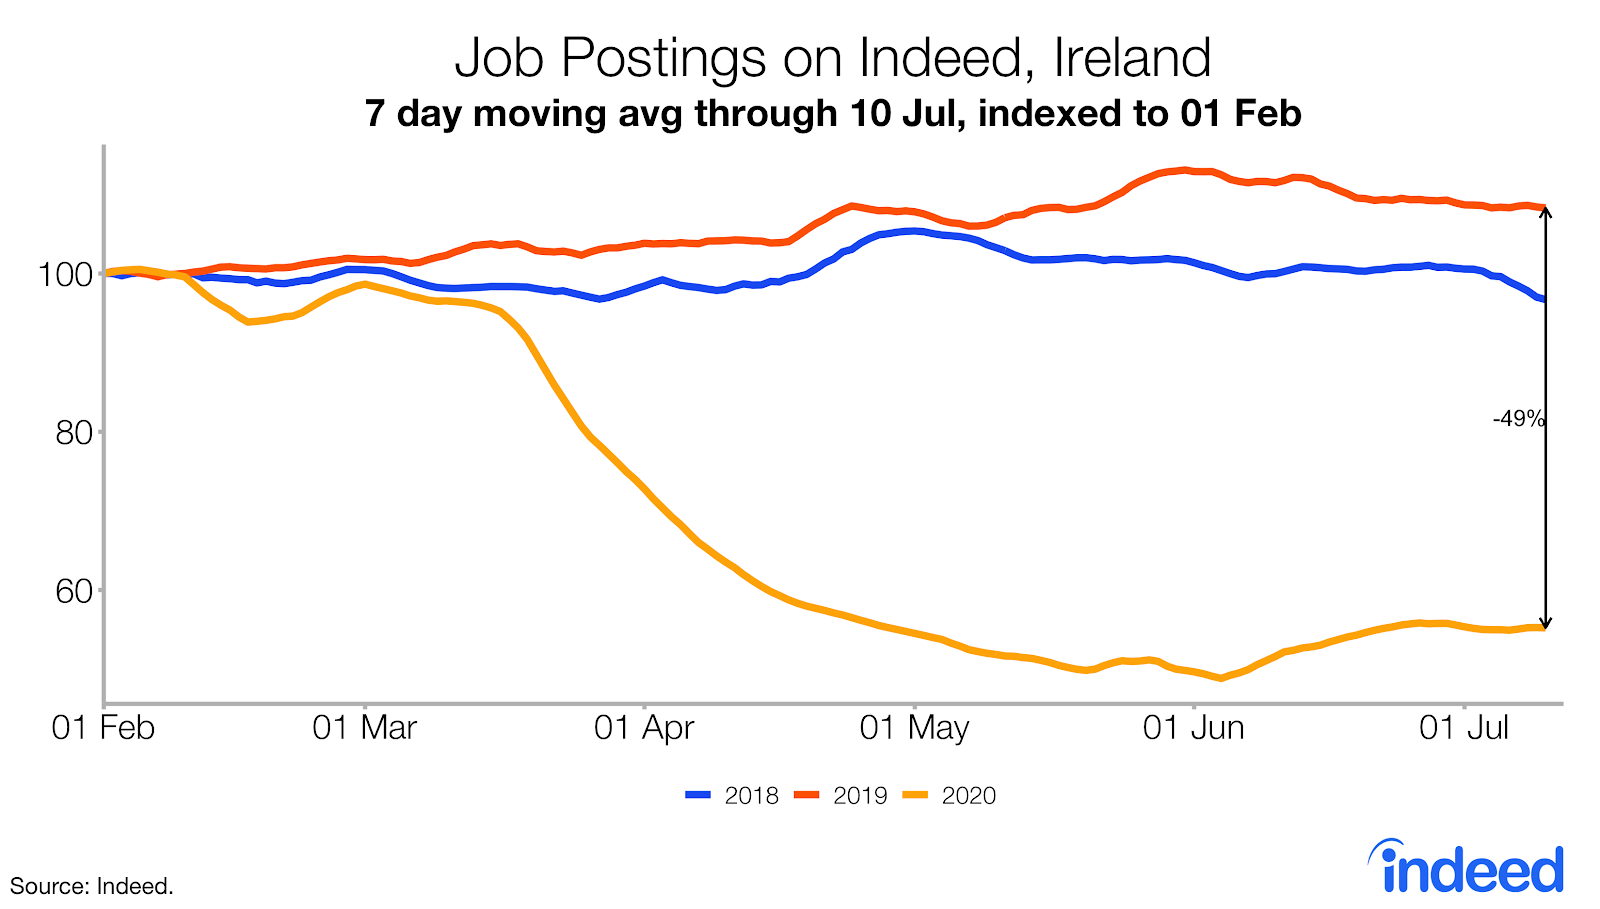 Job postings on Indeed, Ireland